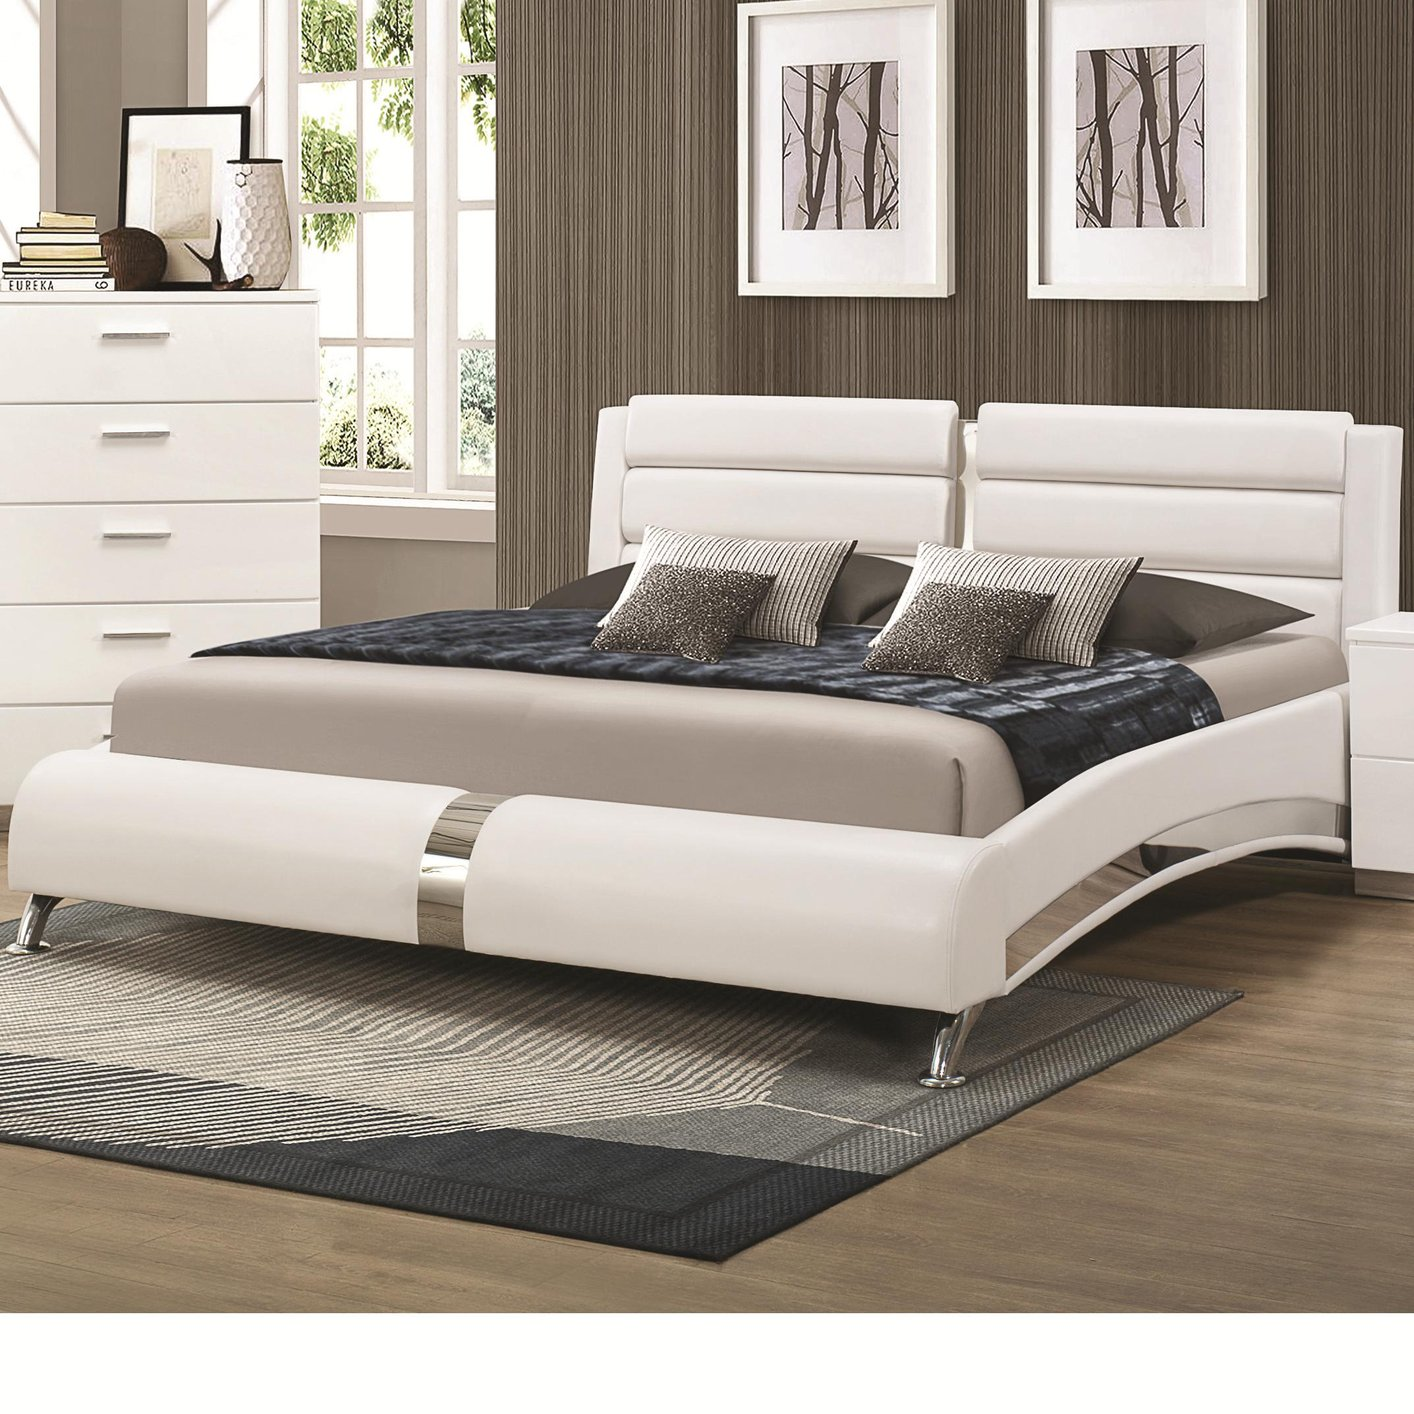 Coaster 300345kw silver california king size wood bed for Bedroom furniture 90036